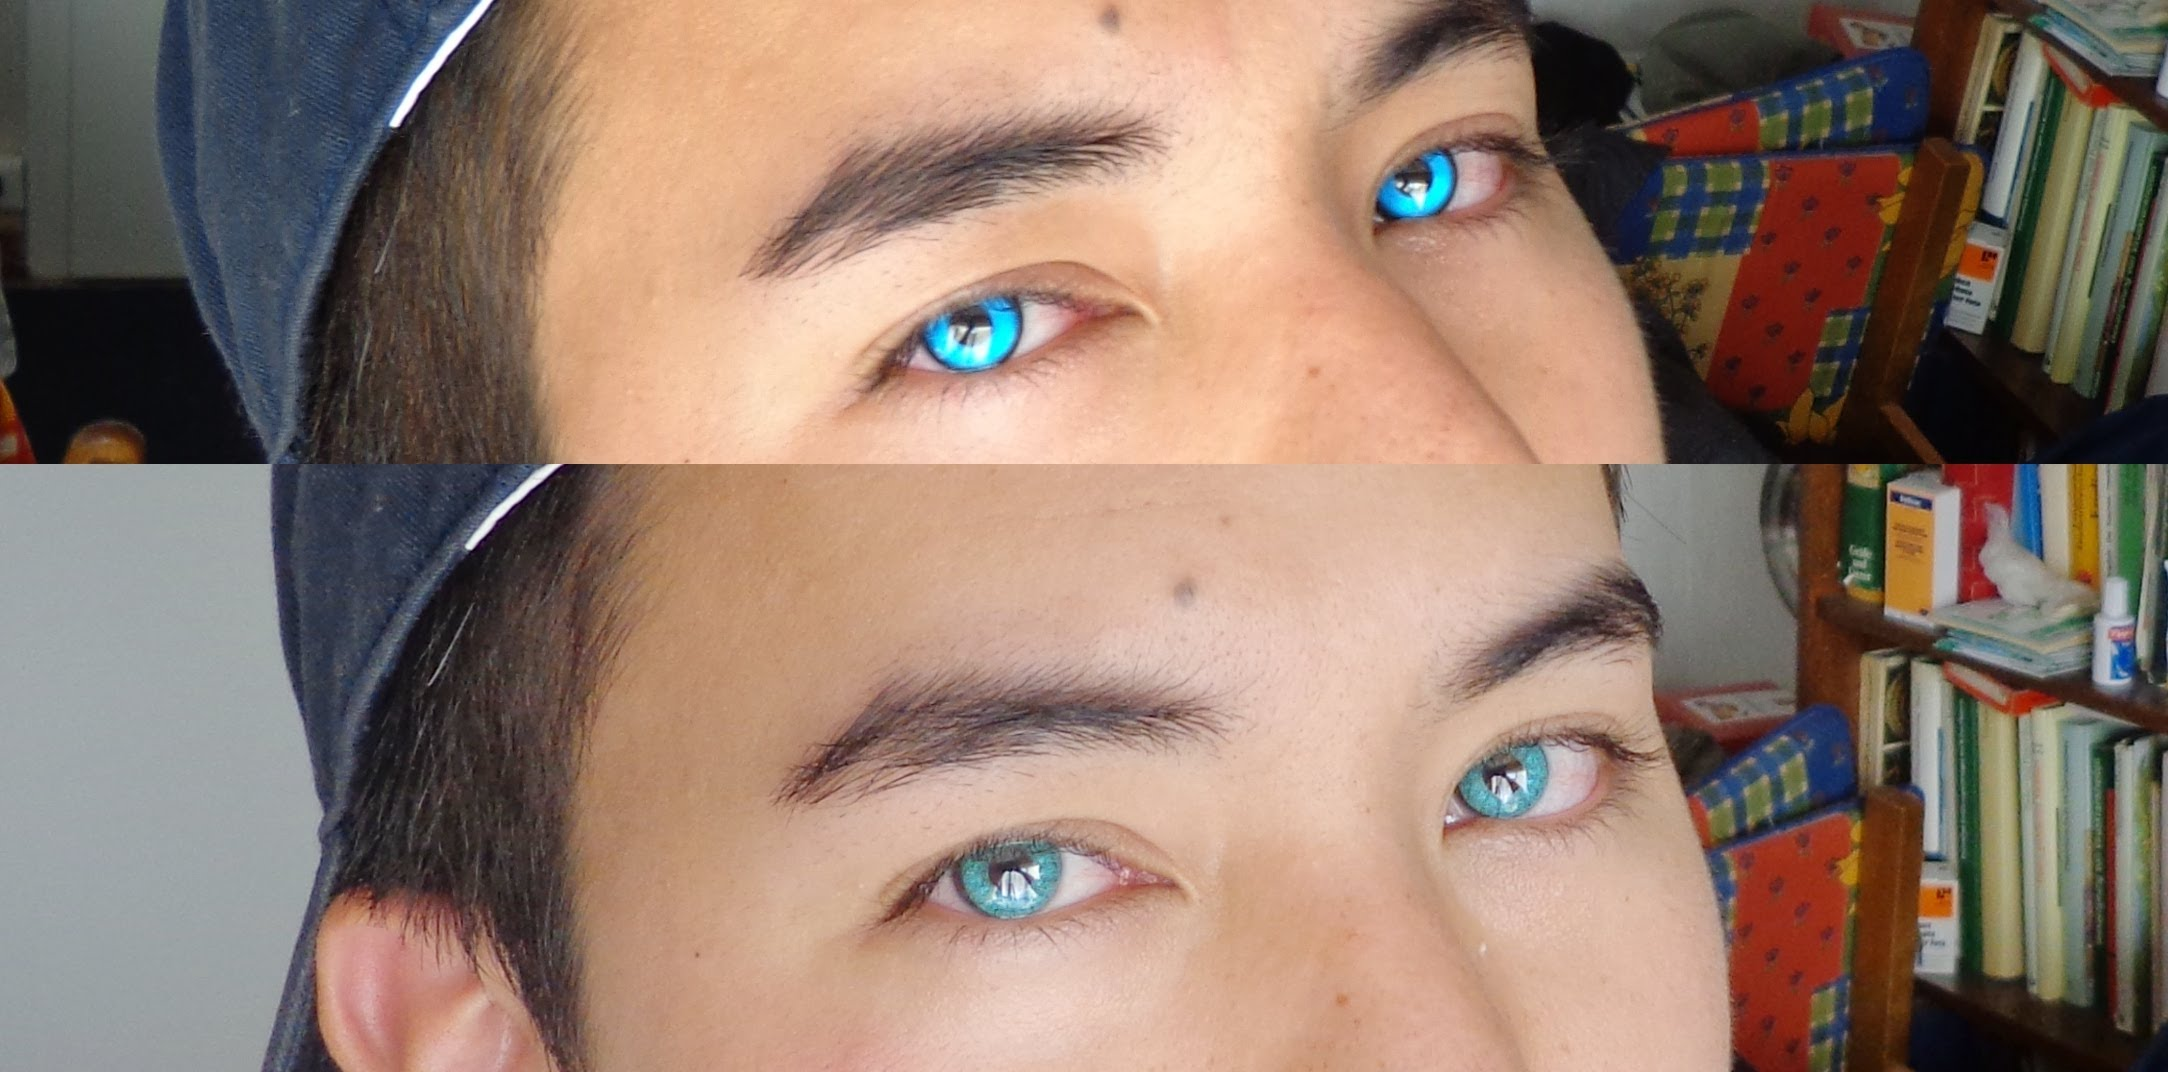 Drawn vampire blue eyed Contacts  eyes blue Lenses